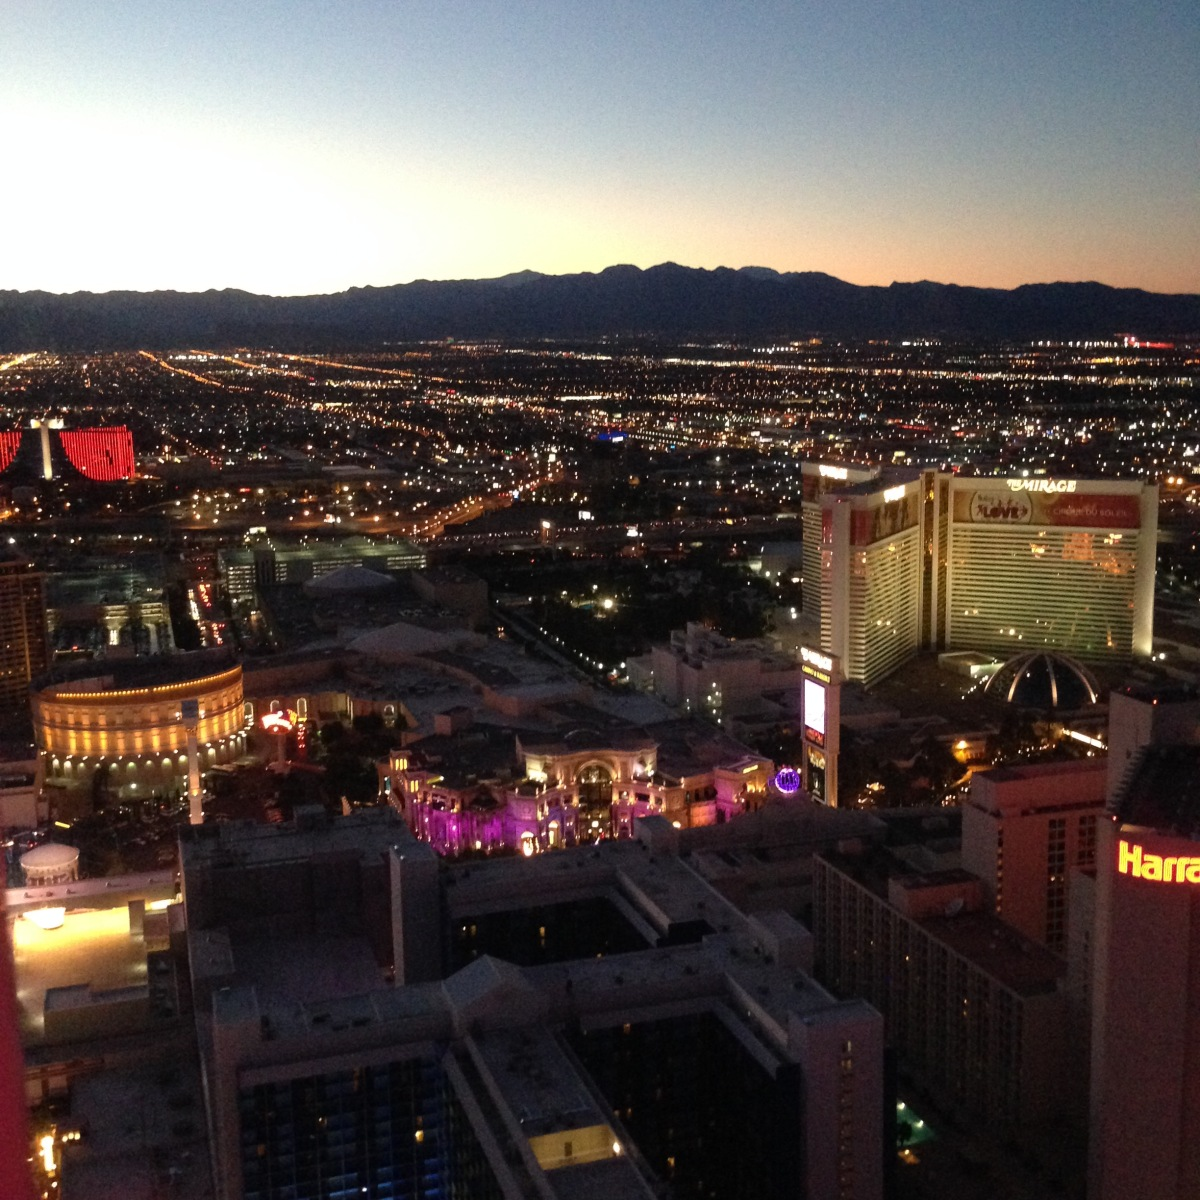 Attraktion, Touristenattraktion, Sehenswürdigkeit, Skyline, Las Vegas, Ausblick, Berge, Nevada, Amerika, Strip